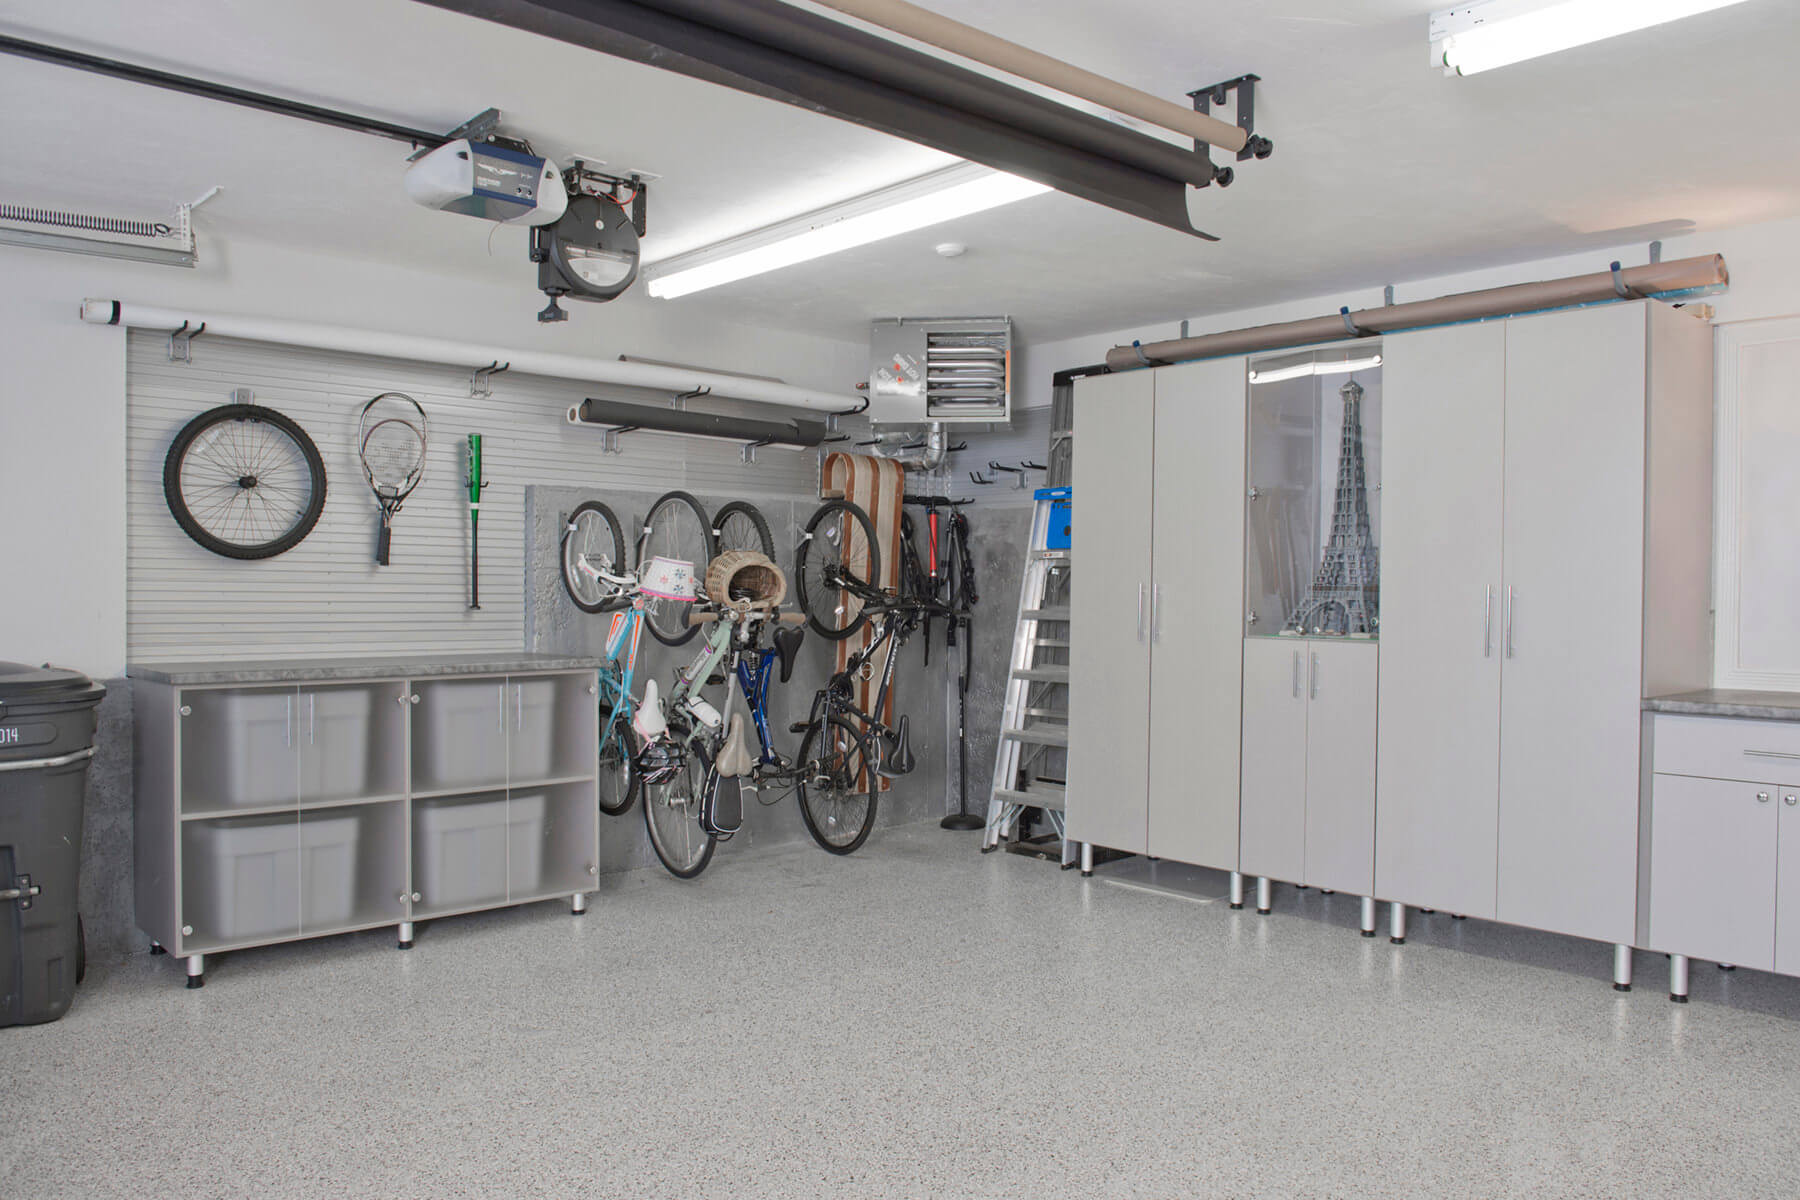 garage stoarage ideas - 29 Garage Storage Ideas Plus 3 Garage Man Caves